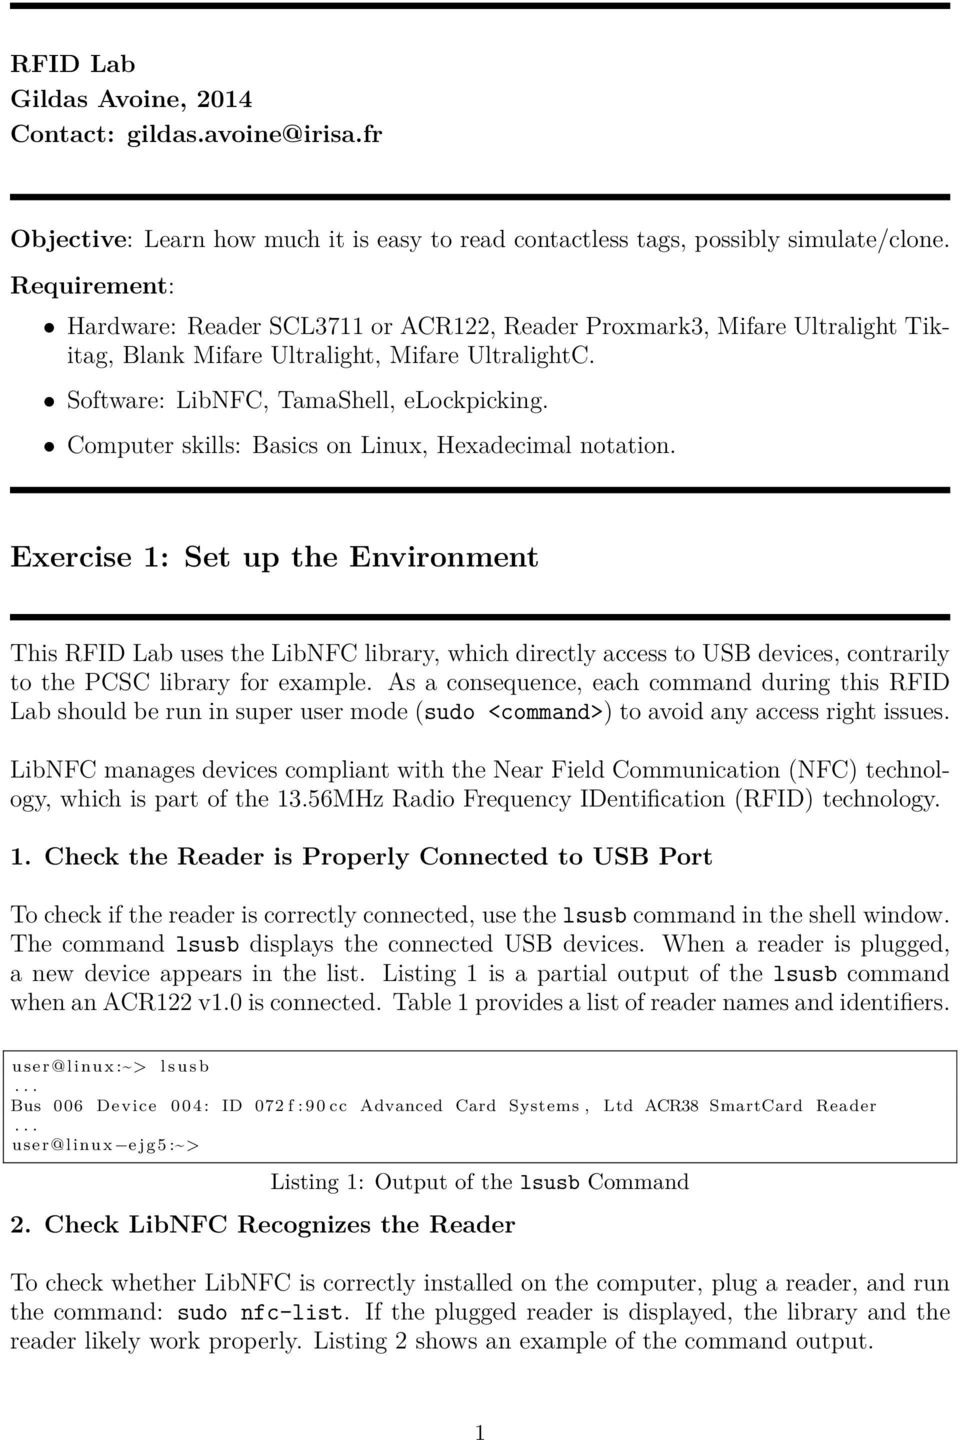 Exercise 1: Set up the Environment - PDF